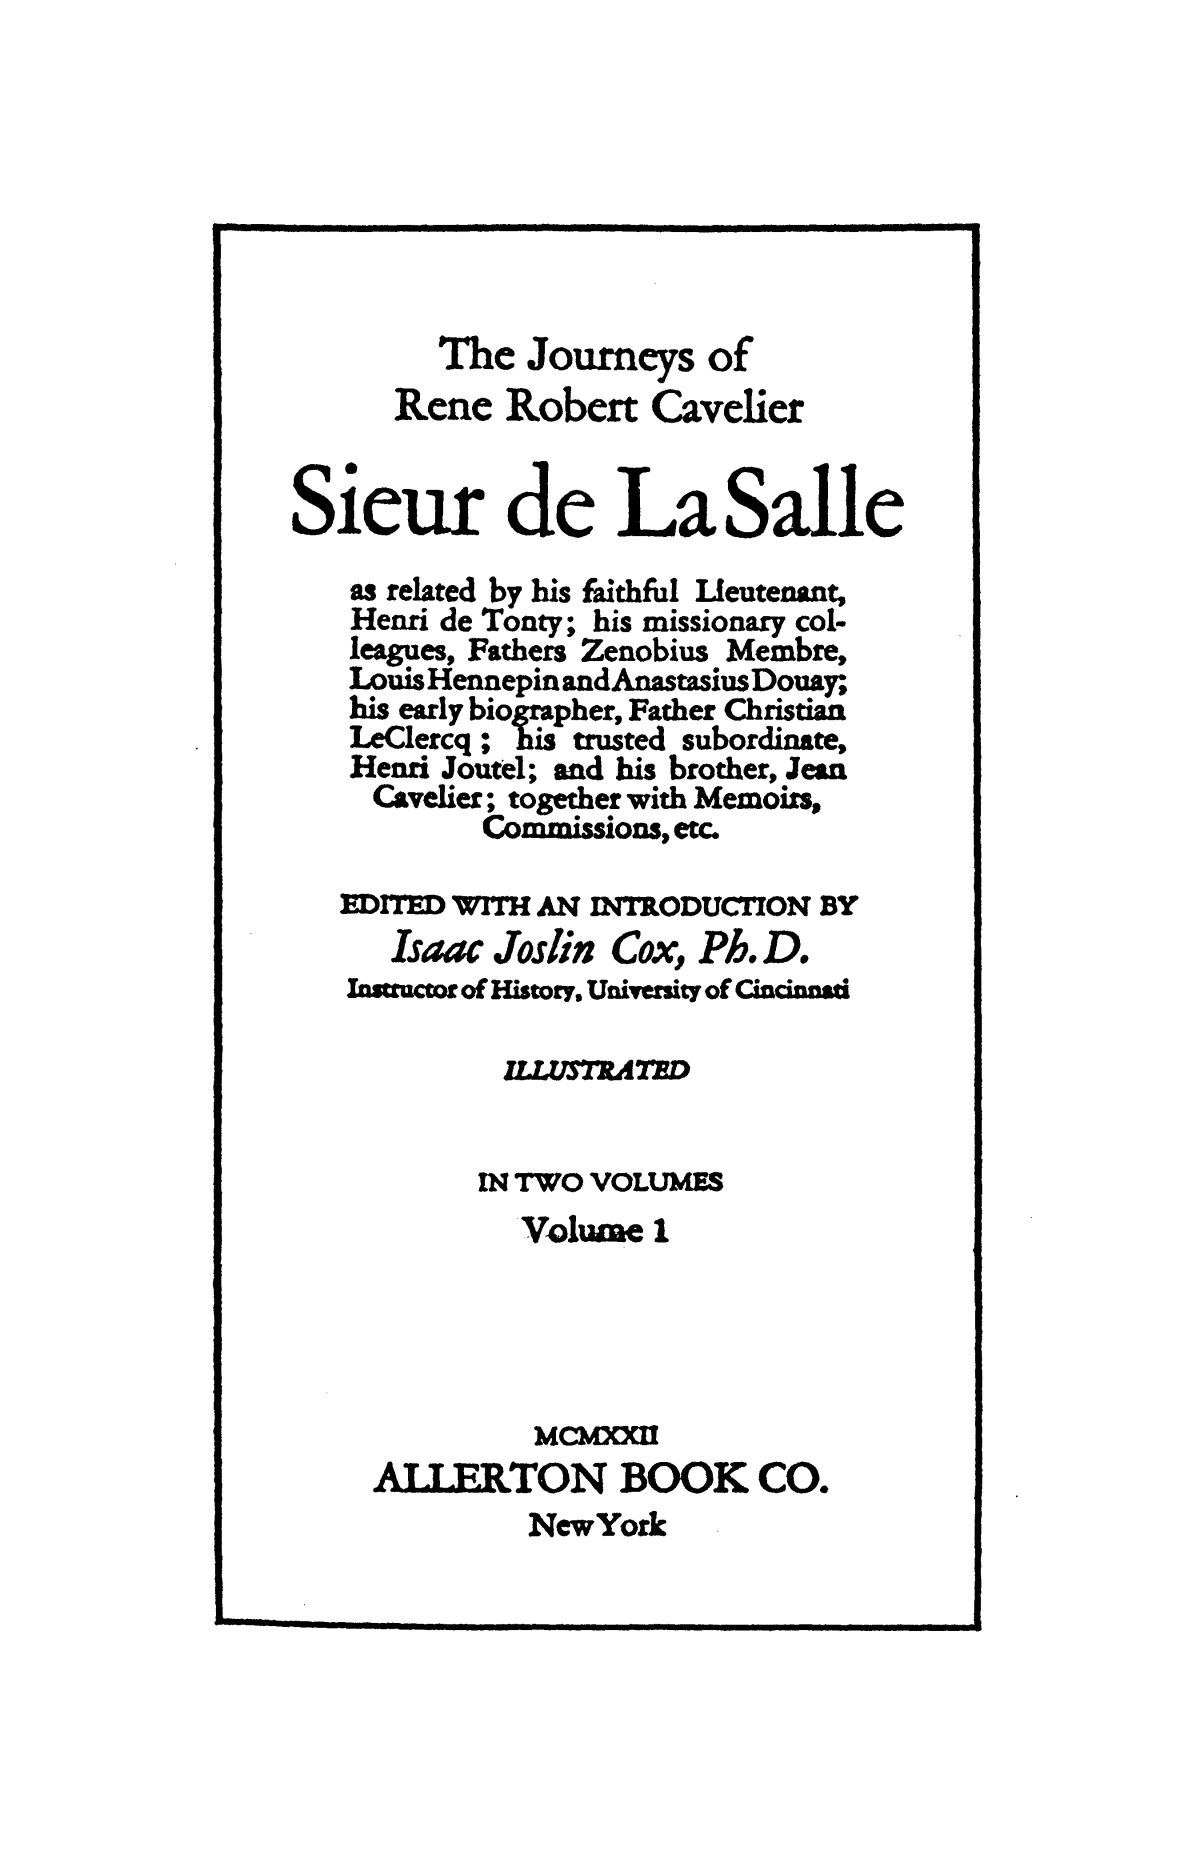 The journeys of Rene Robert Cavelier, sieur de La Salle                                                                                                      [Sequence #]: 3 of 330